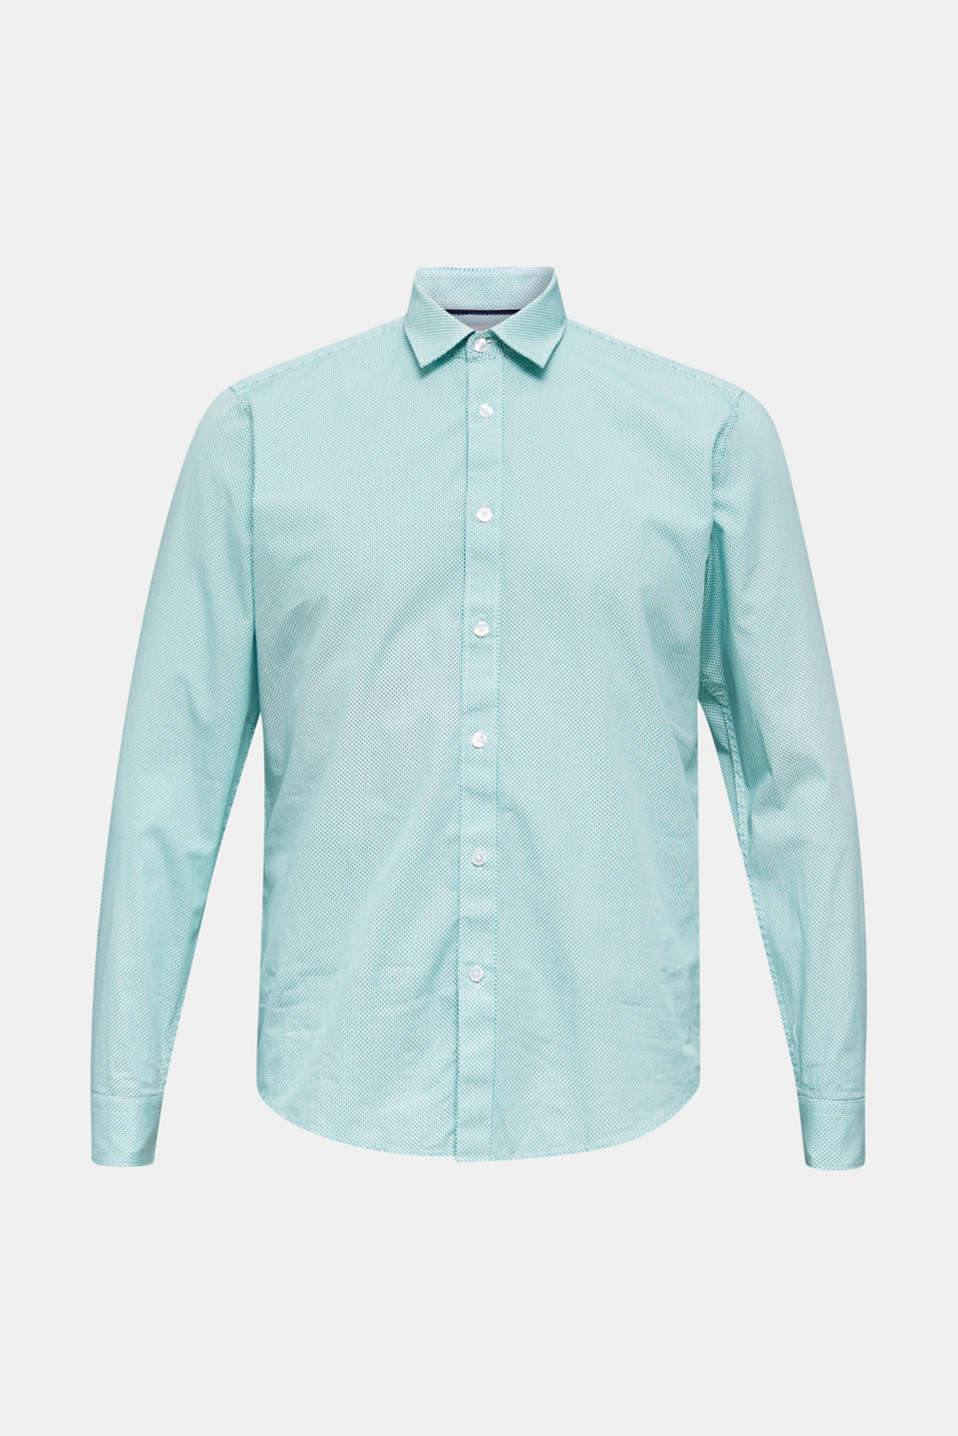 Textured shirt made of 100% cotton, TURQUOISE 4, detail image number 6